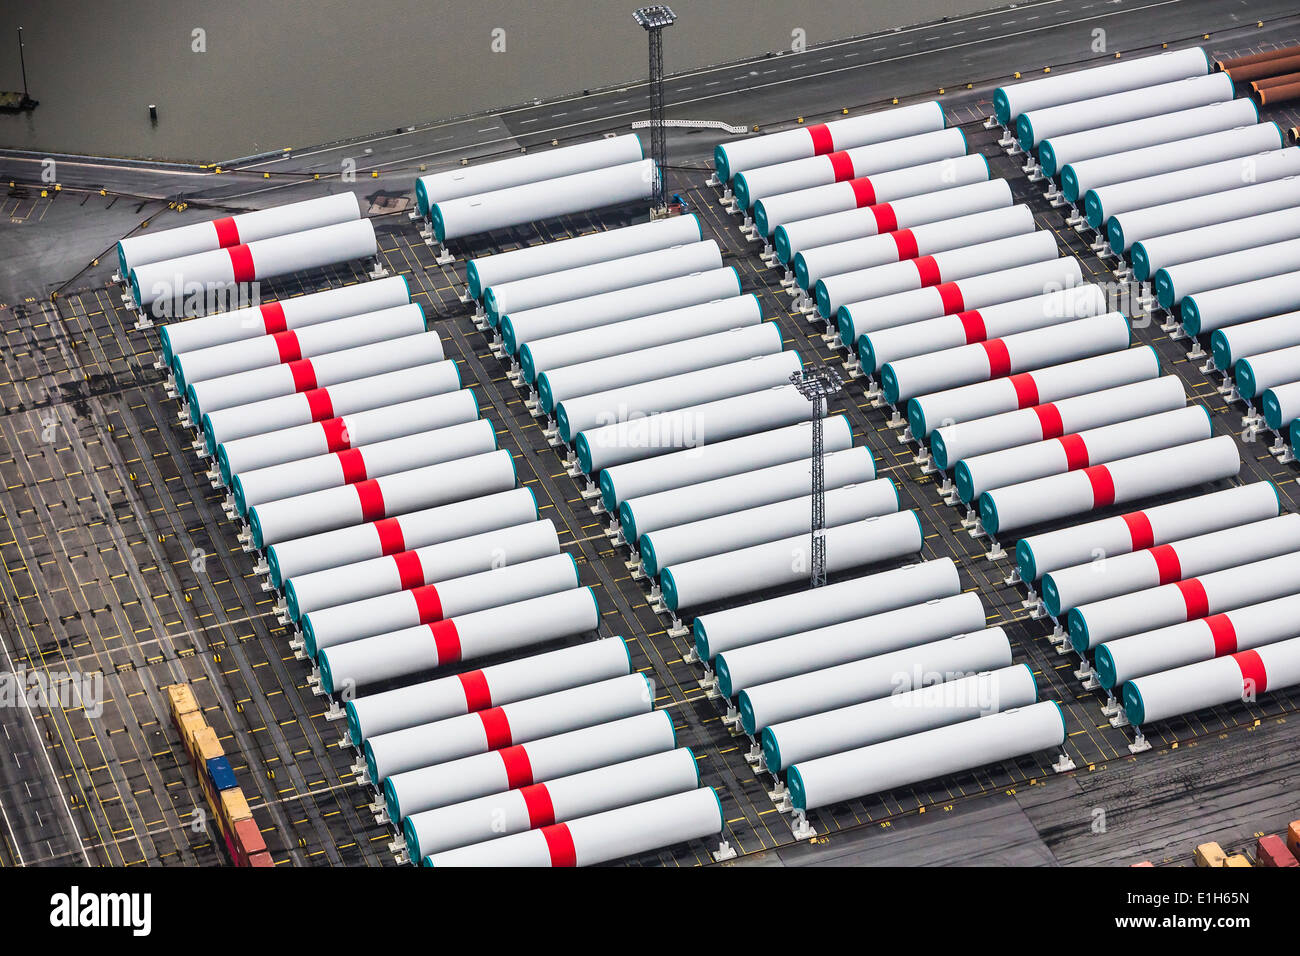 Rows of wind towers, component part for off shore wind turbines, Bremerhaven, Bremen, Germany - Stock Image